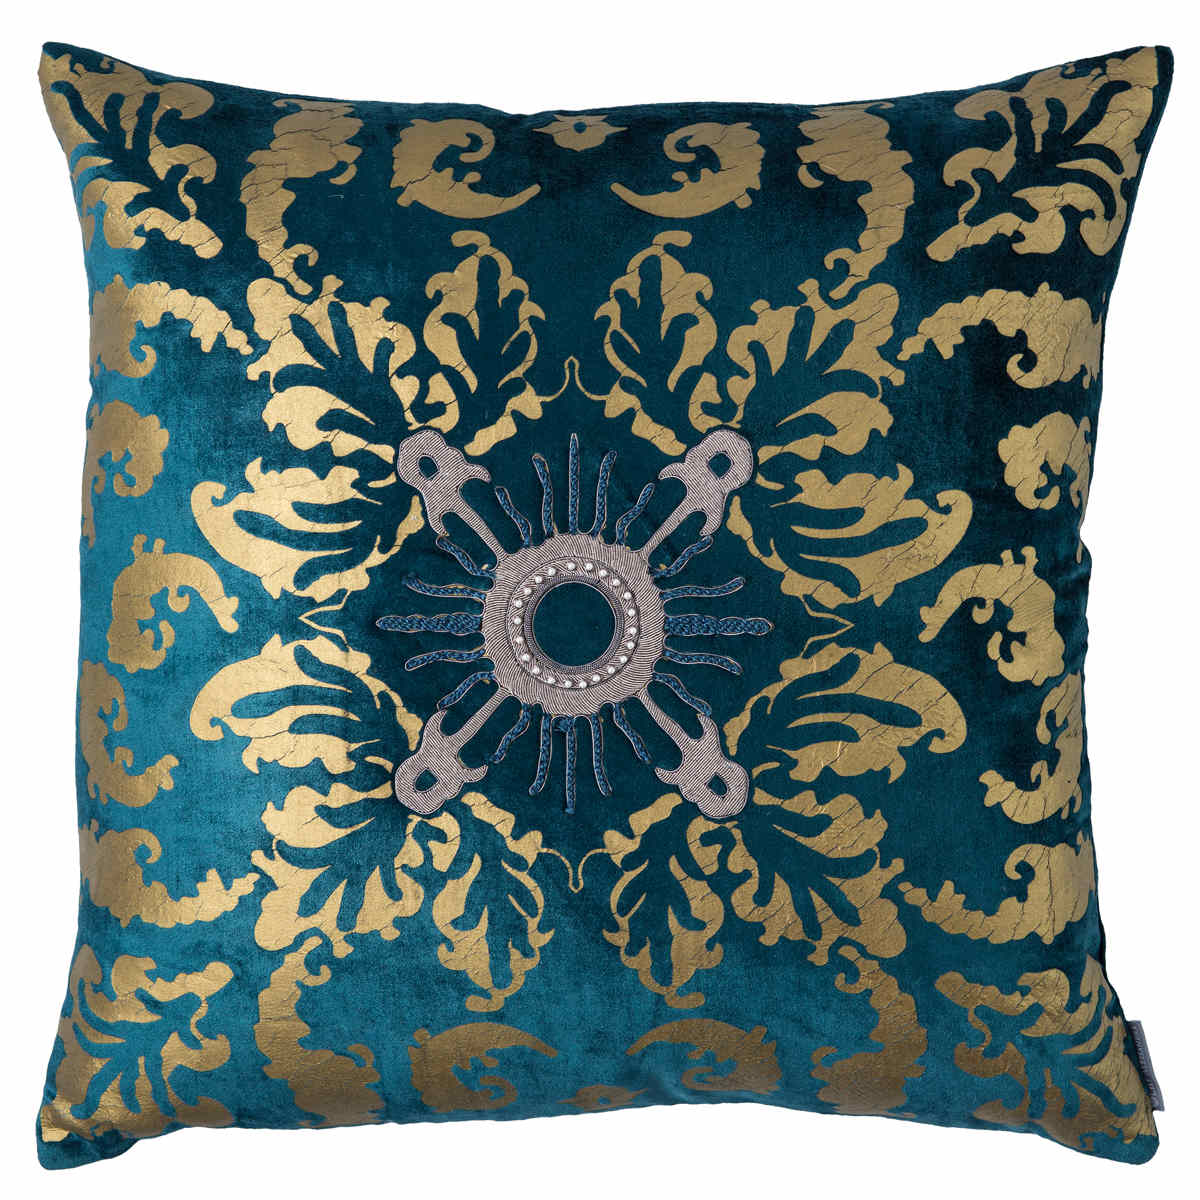 rubelli pillow velvet silvery pillows barberini backed en cover pattern fabric shop with throw fortuny gold apricot orange burnt